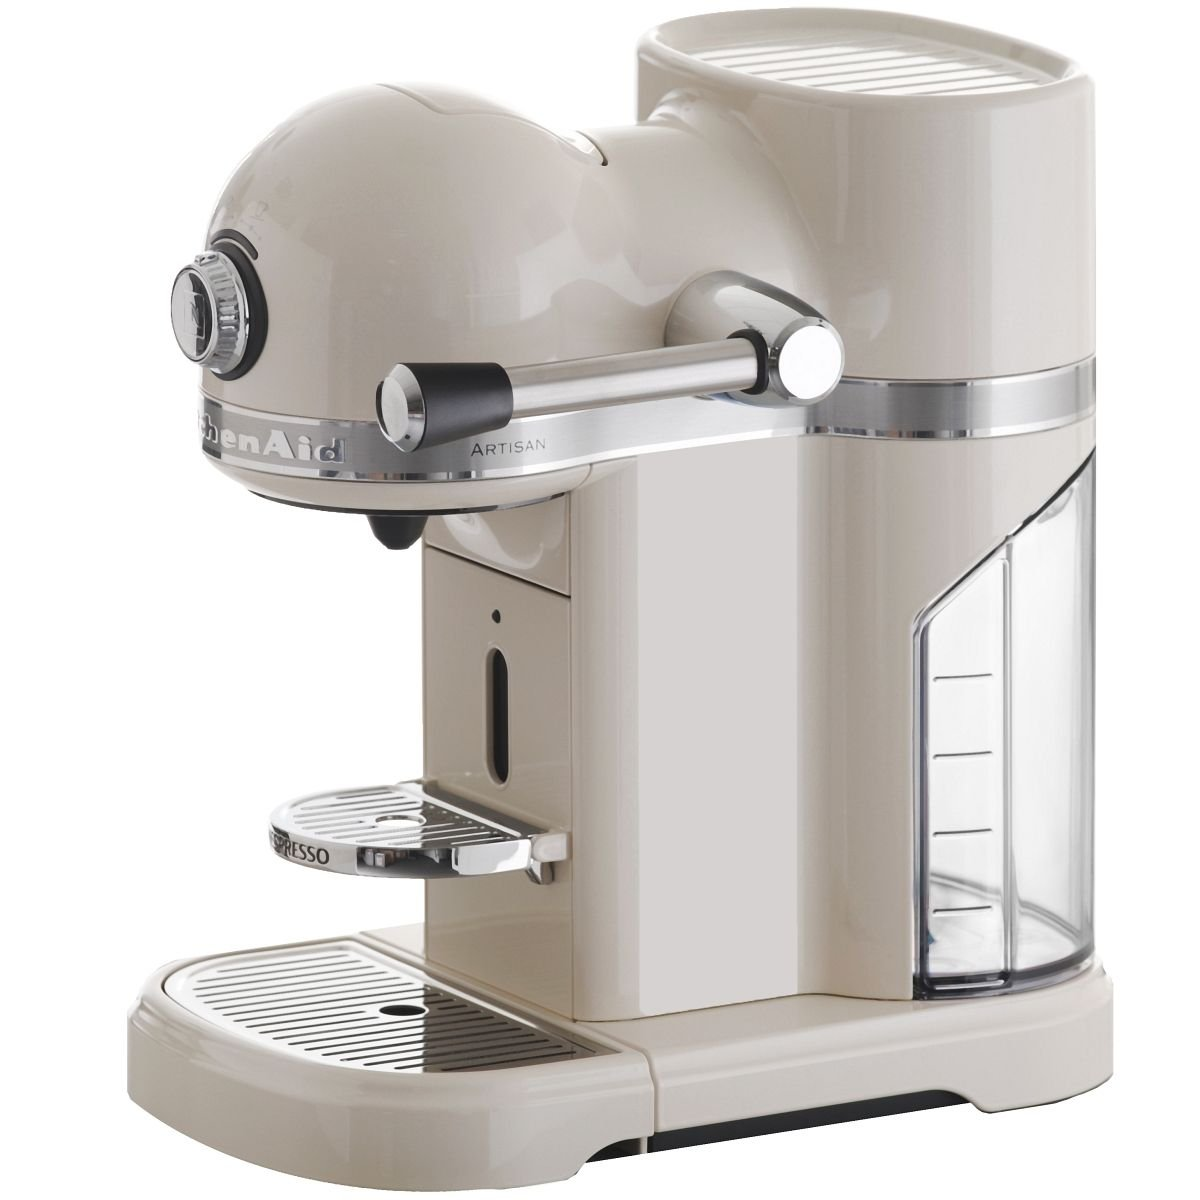 KitchenAid Artisan - Cafetera de cápsulas, color crema: Amazon.es ...